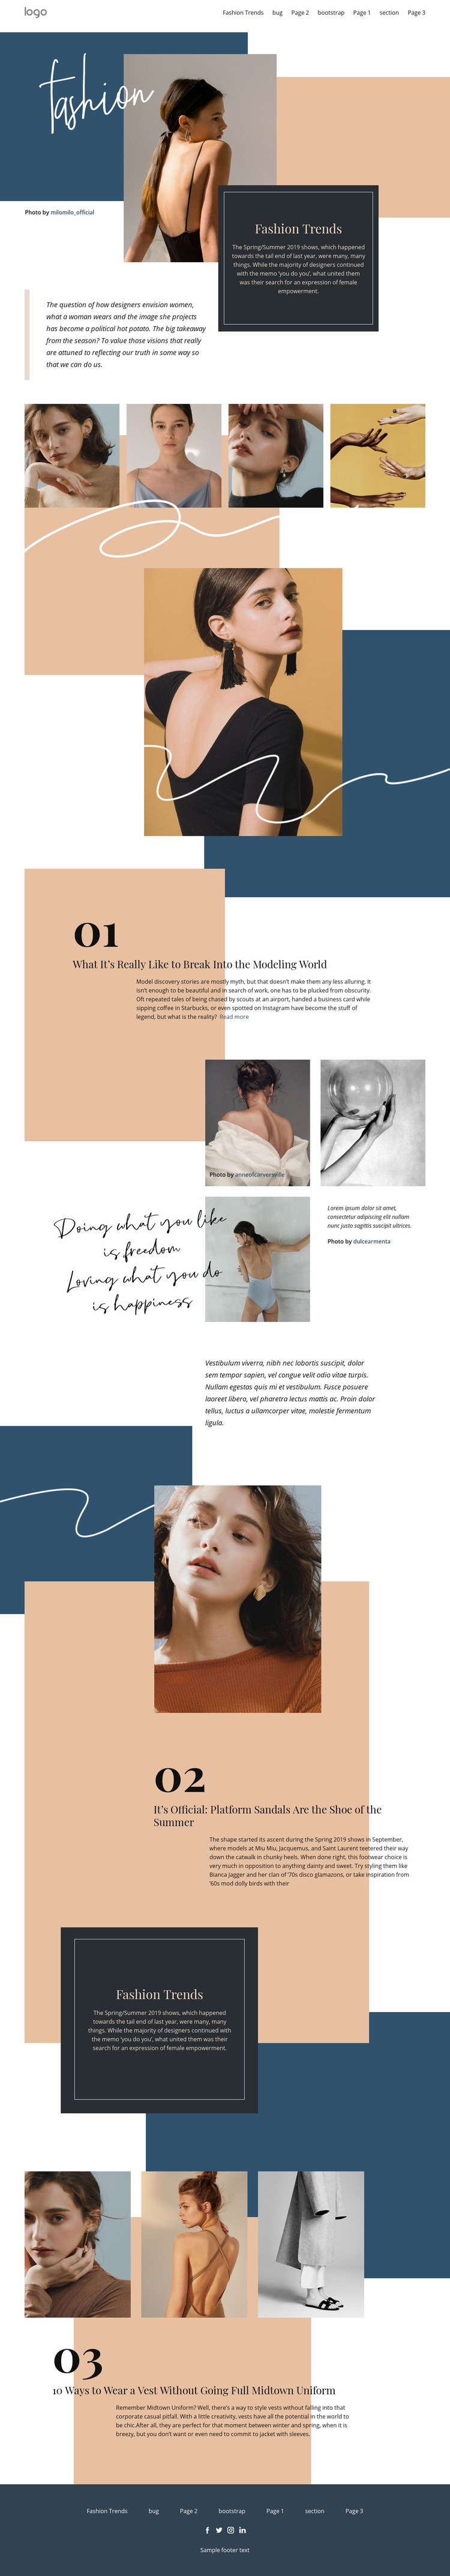 Innovative trends in fashion  Web Page Design